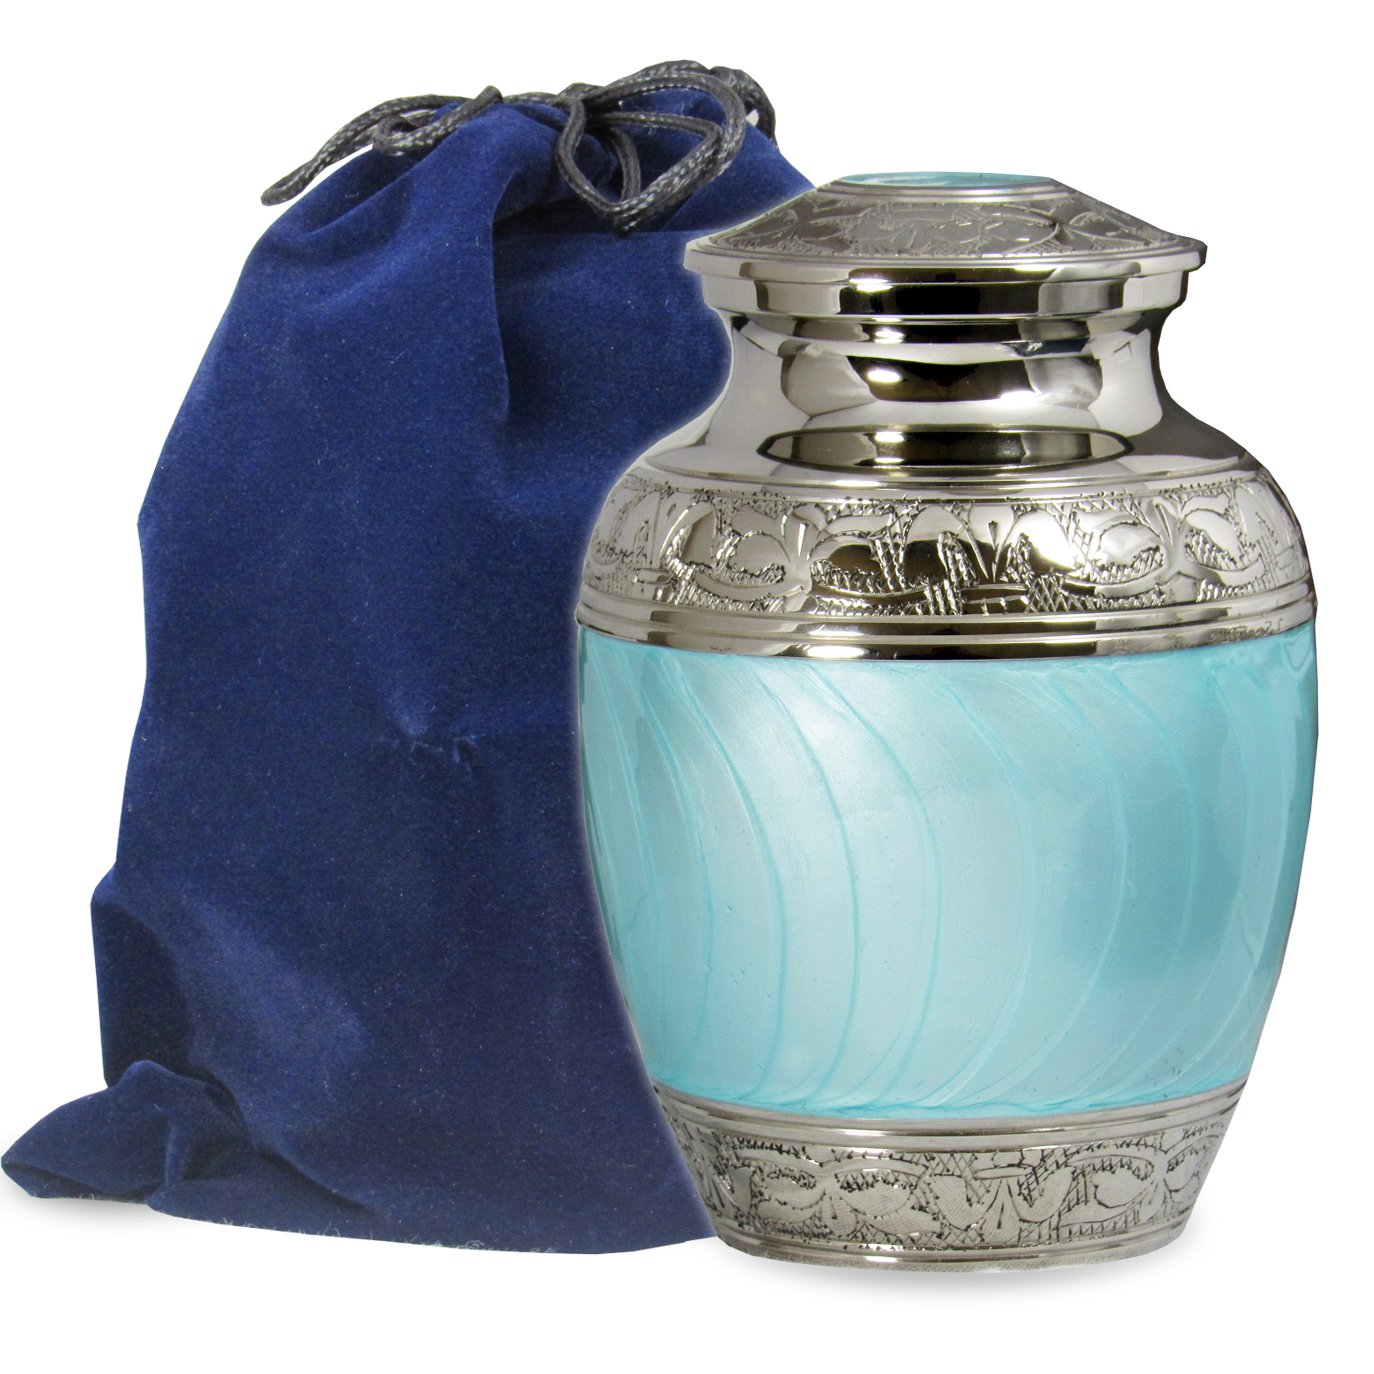 Hugs and Kisses Beautiful Light Blue Child's Cremation Urn For Human Ashes - For a Lost Son or Baby Boy or Pet Dog or Cat - Find Comfort This Small Beautiful High Quality Urn - w Velvet Bag